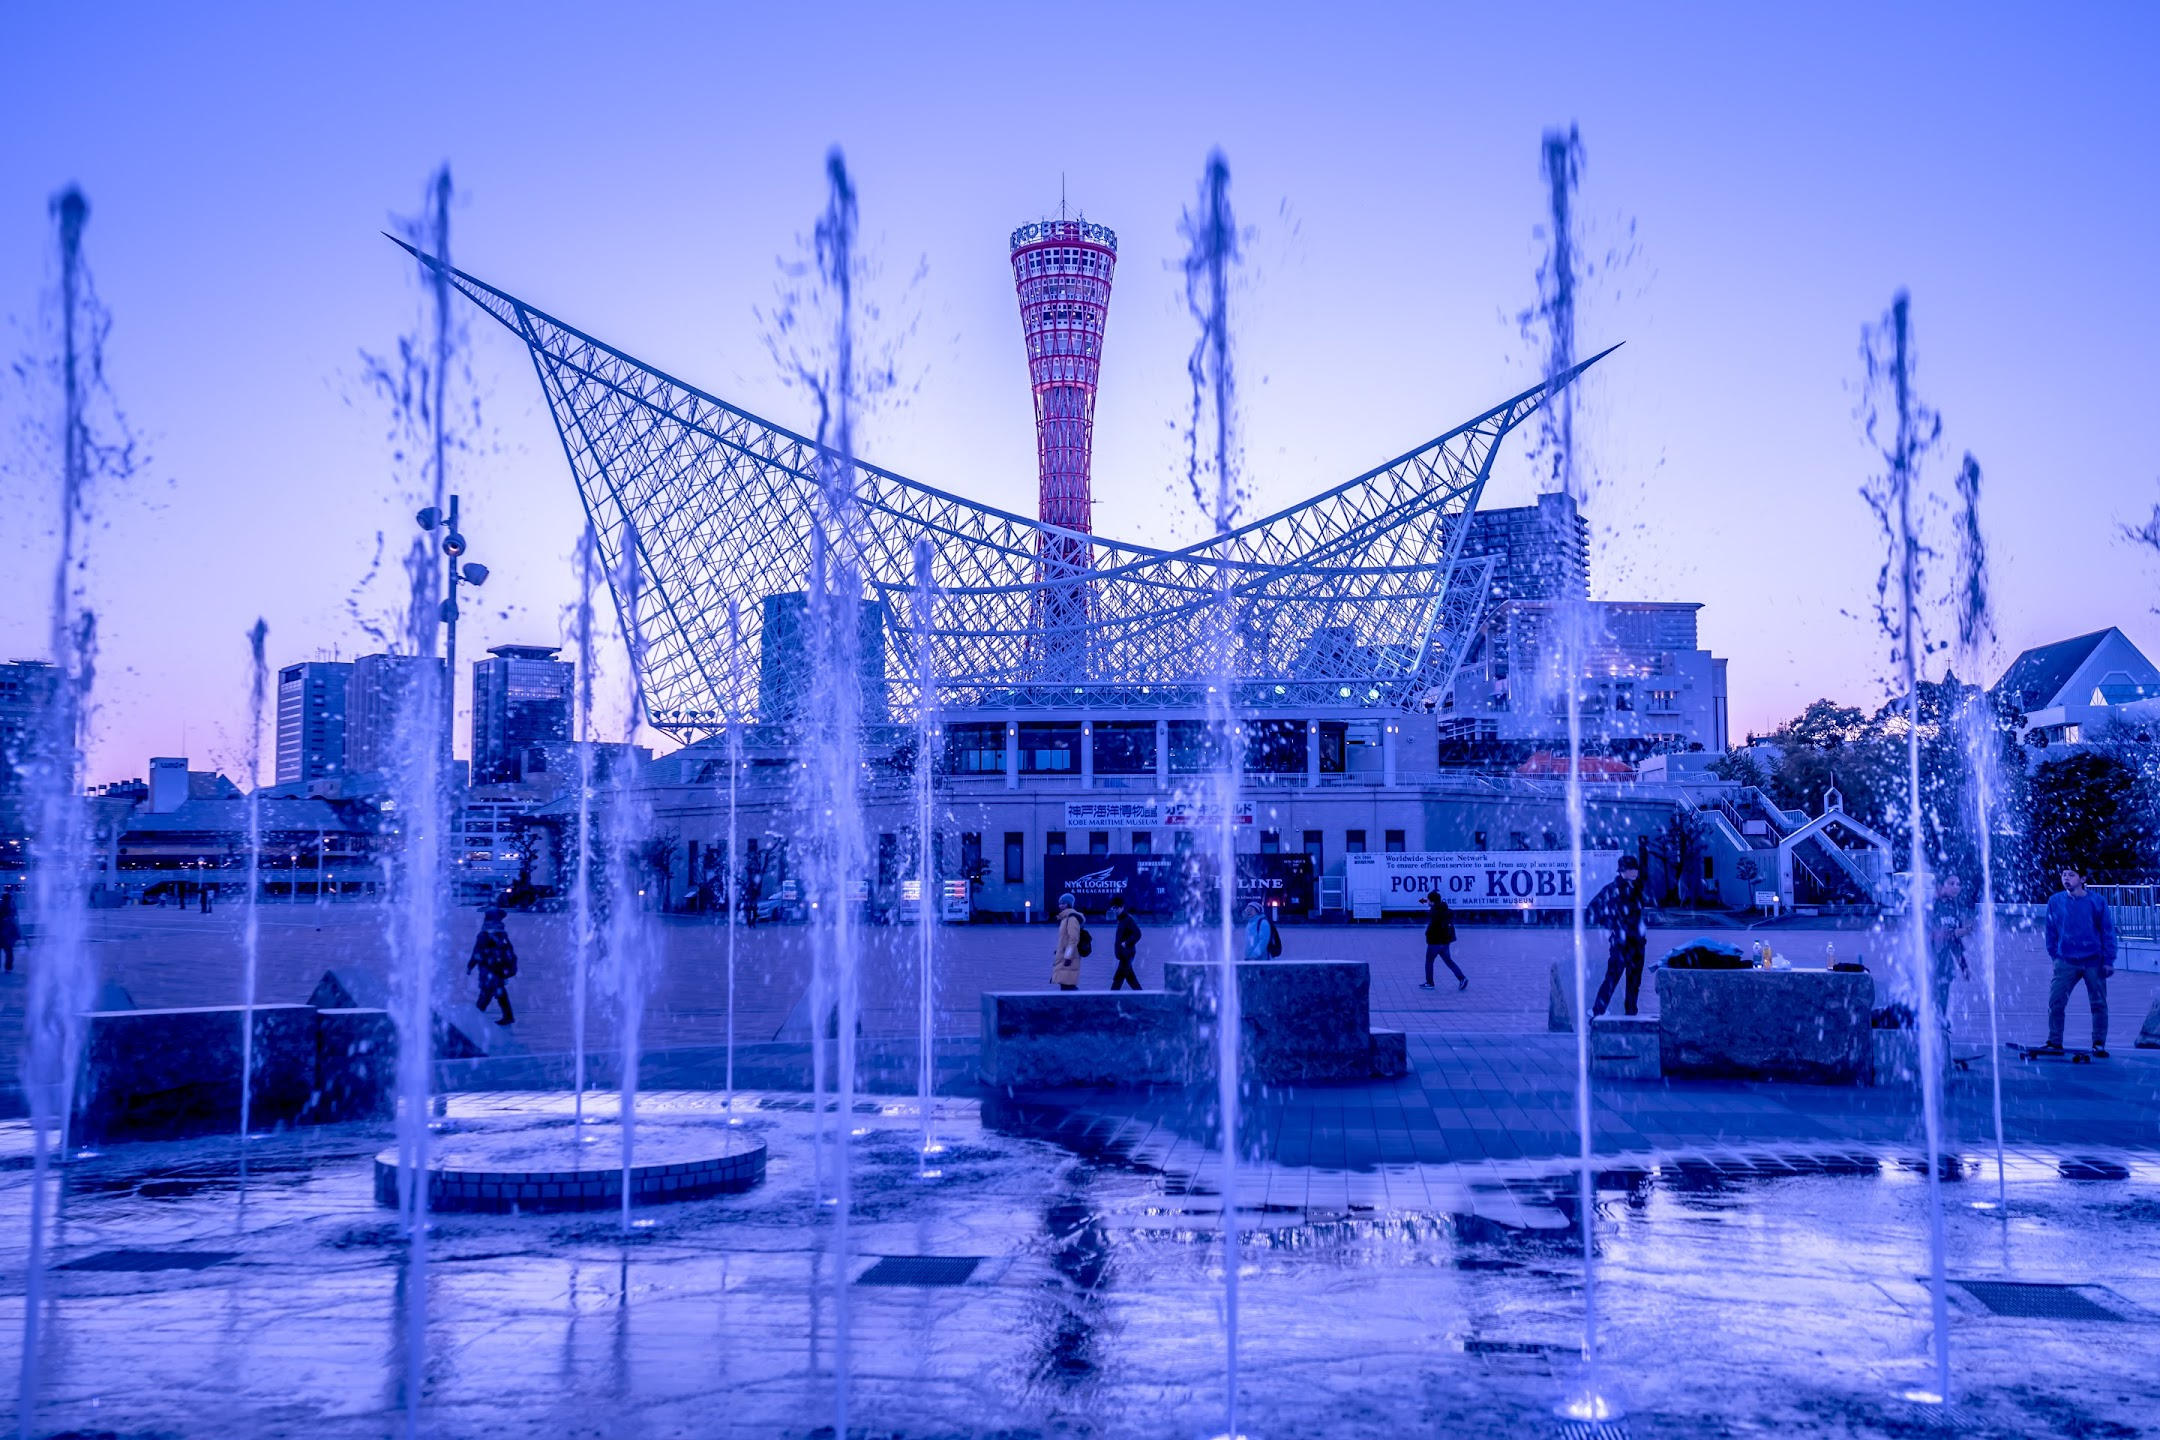 Kobe Meriken Park Fountain Square light-up